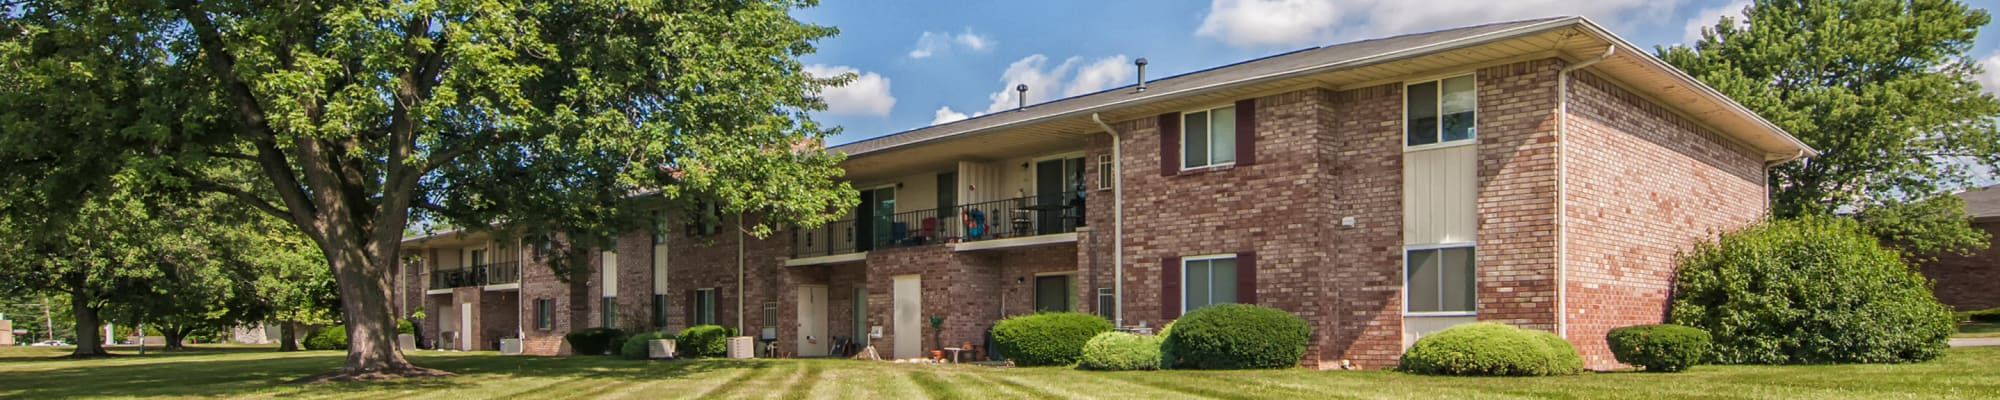 Amenities offered at Beech Meadow in Beech Grove, Indiana